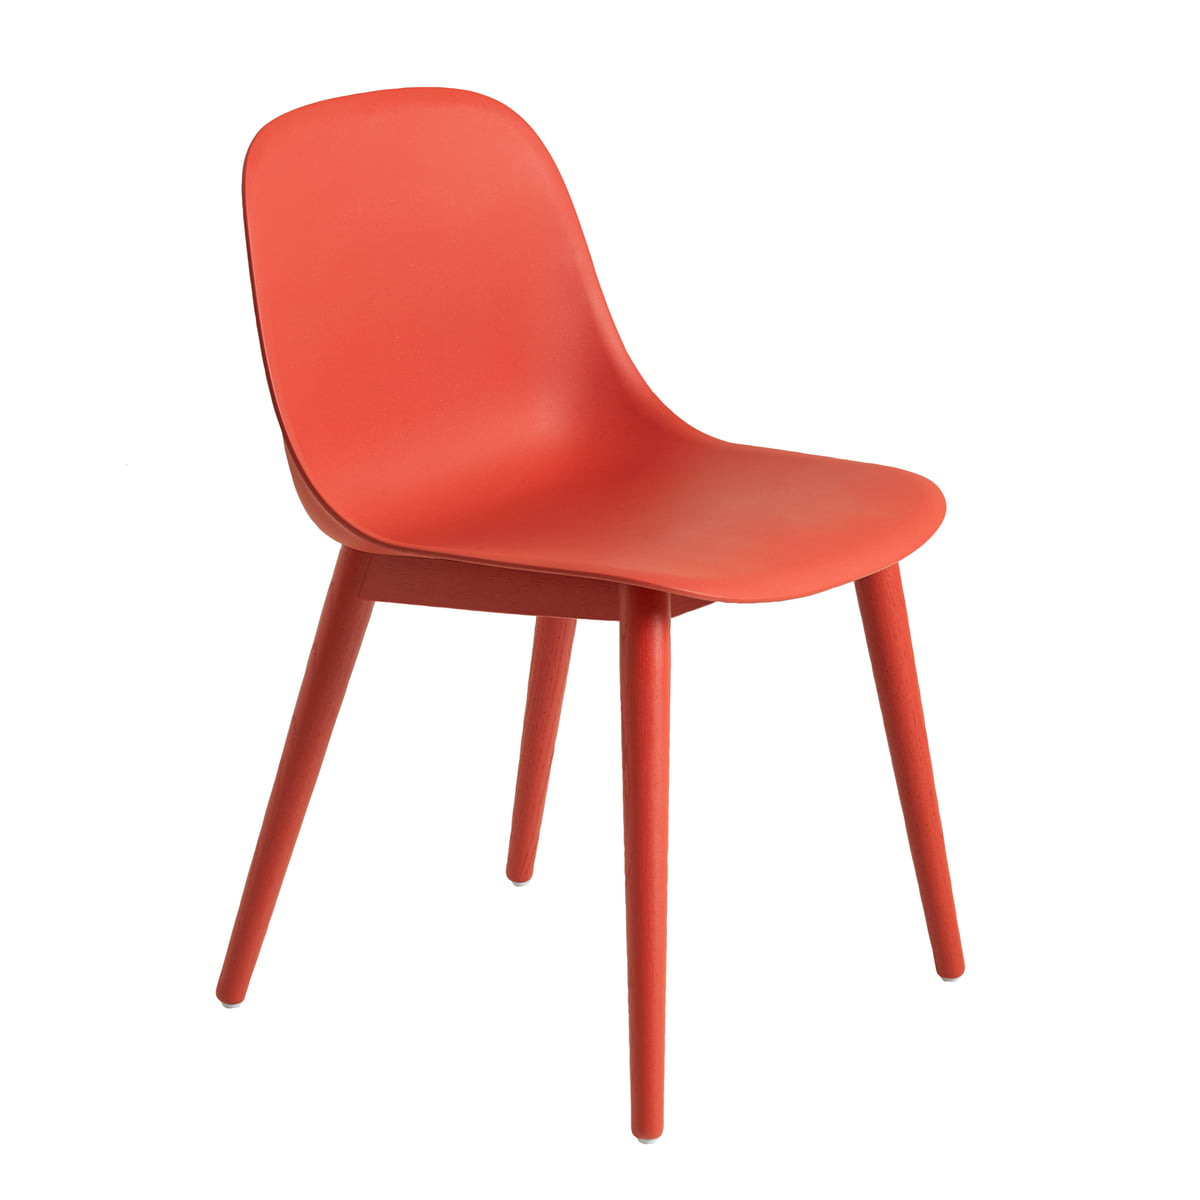 https://www.connox.de/m/100030/198013/media/muuto/Fiber-Chair/Muuto-Fiber-Side-Chair-Wood-dusty-red-dusty-red.jpg